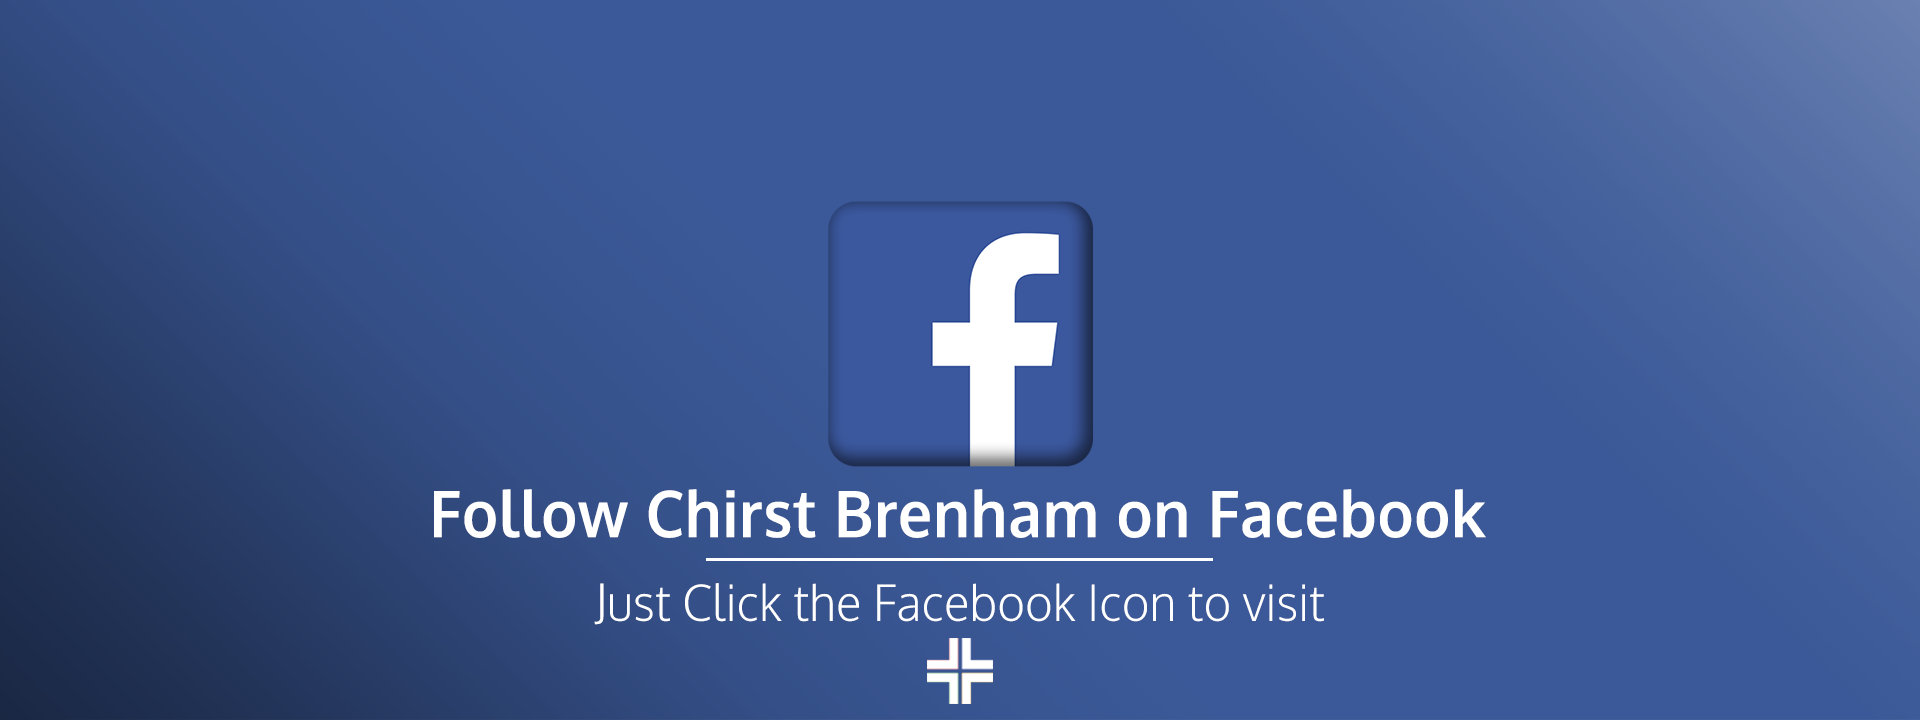 Follow Christ Brenham